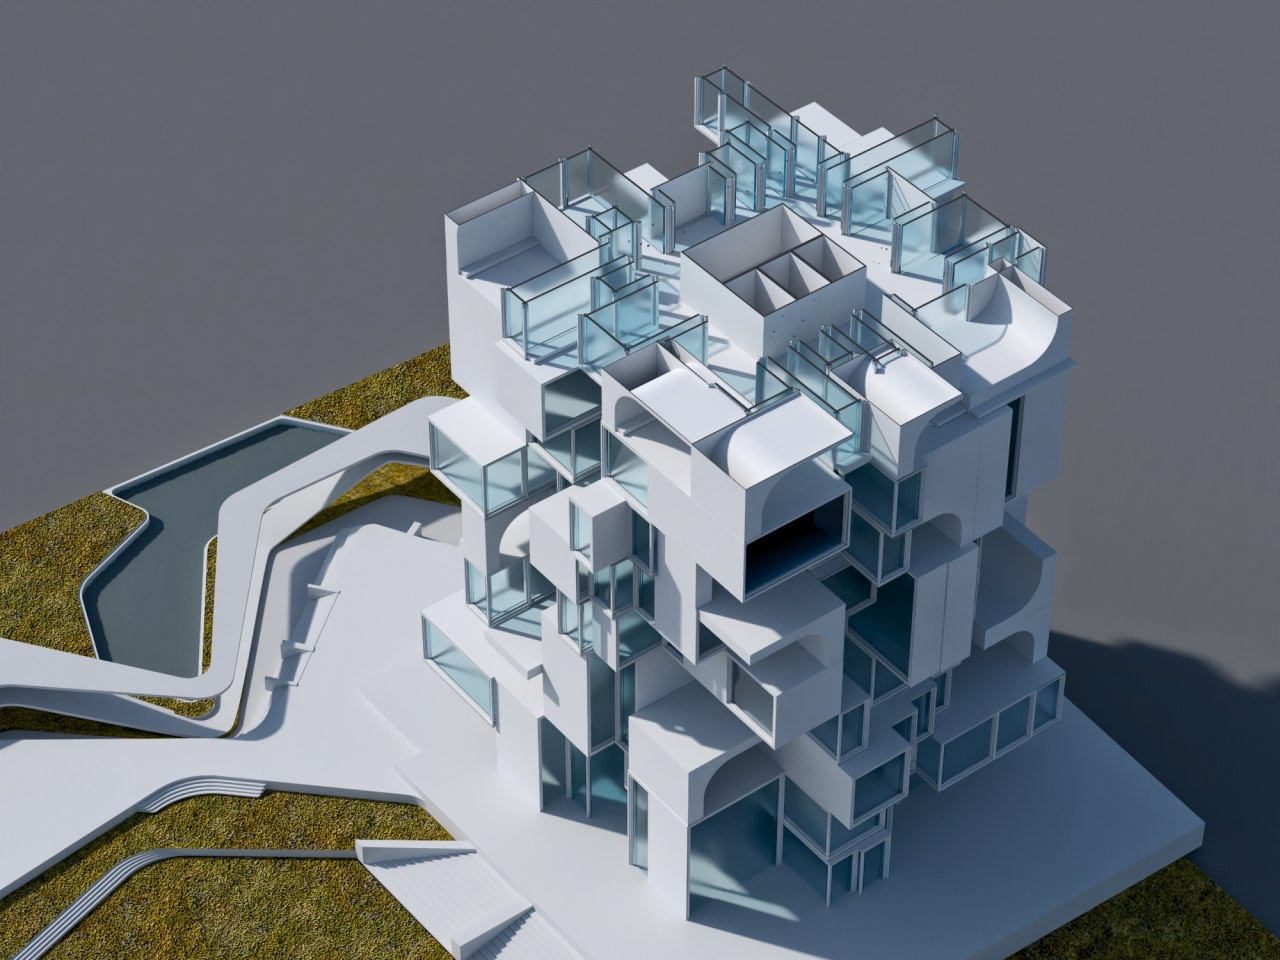 building sections shown in the 3d model